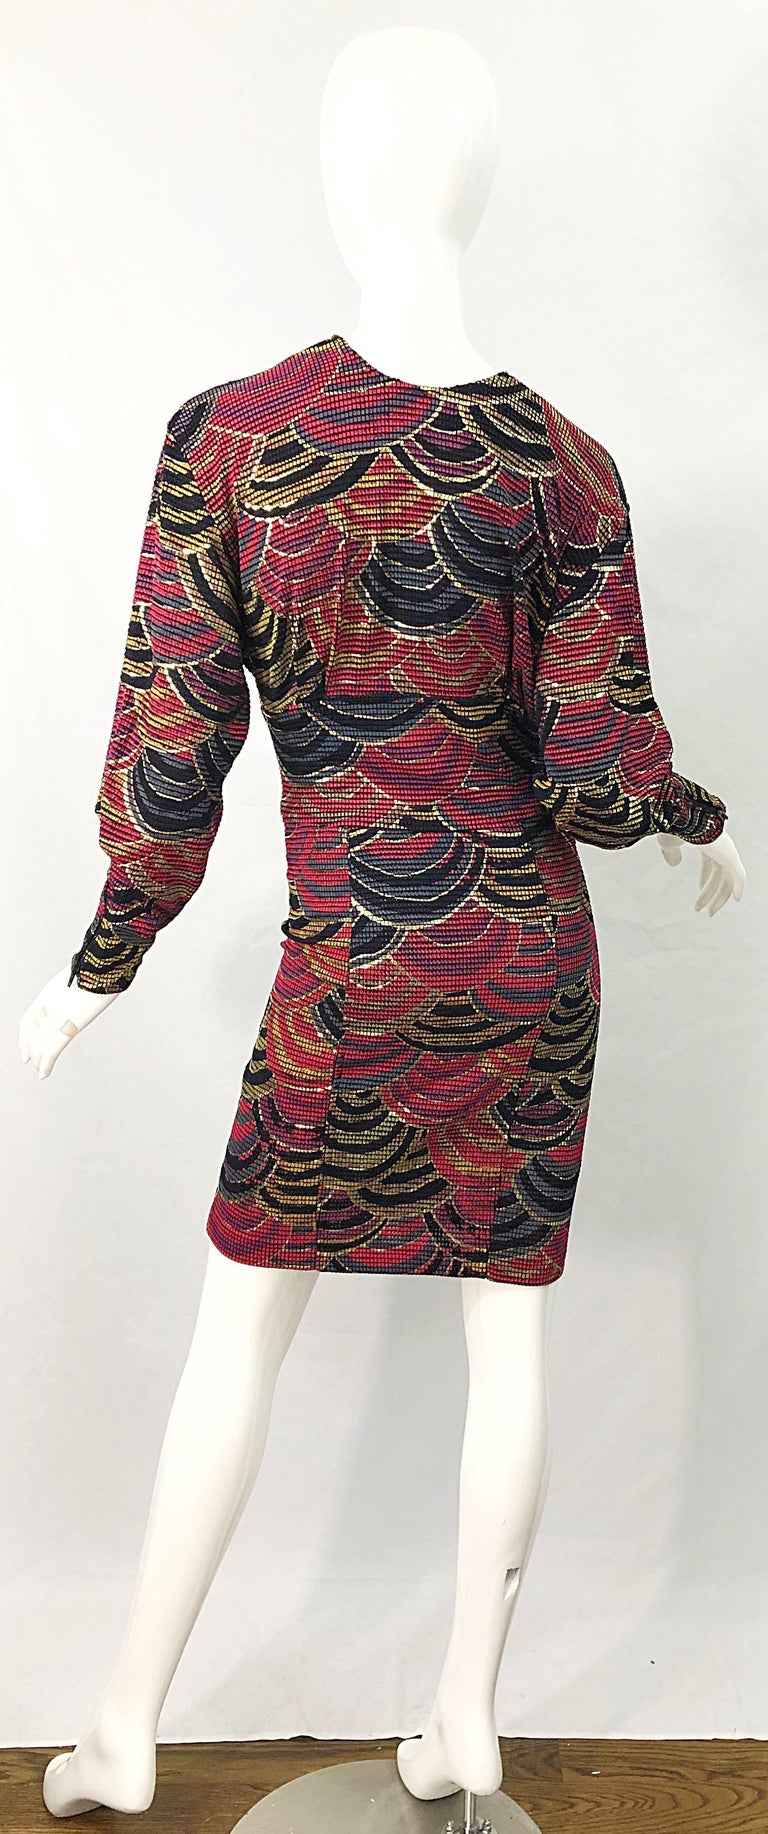 1980s Hand Painted Reversible Red + Gold + Green Vintage 80s Avant Garde Dress For Sale 3